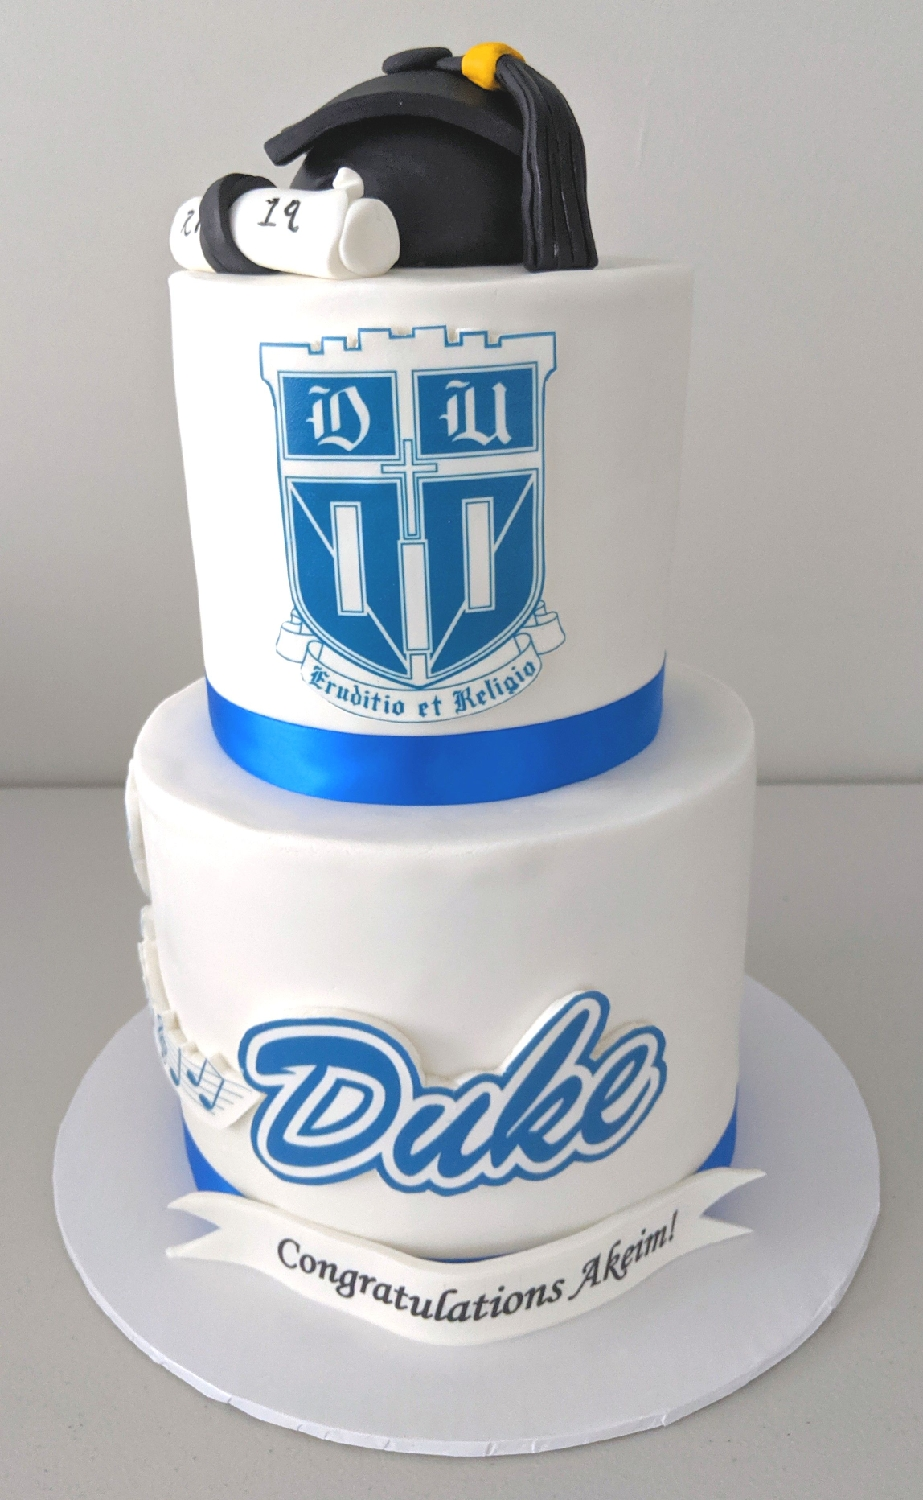 Duke University Graduation Cake